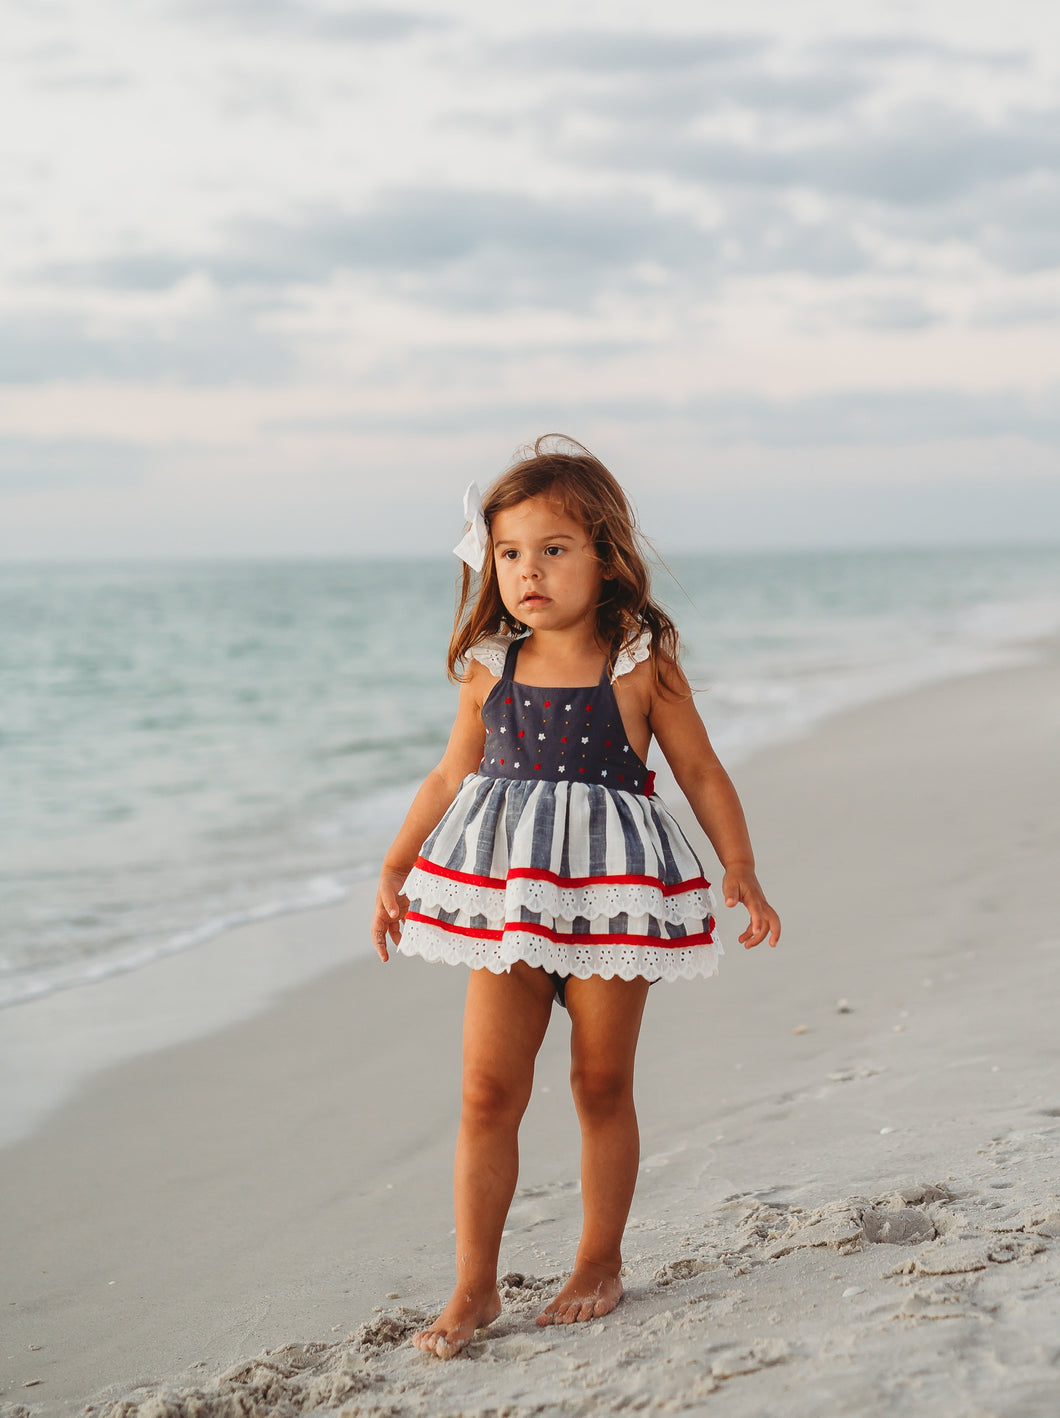 Kate Skirted Romper- Stars and Stripes Romper